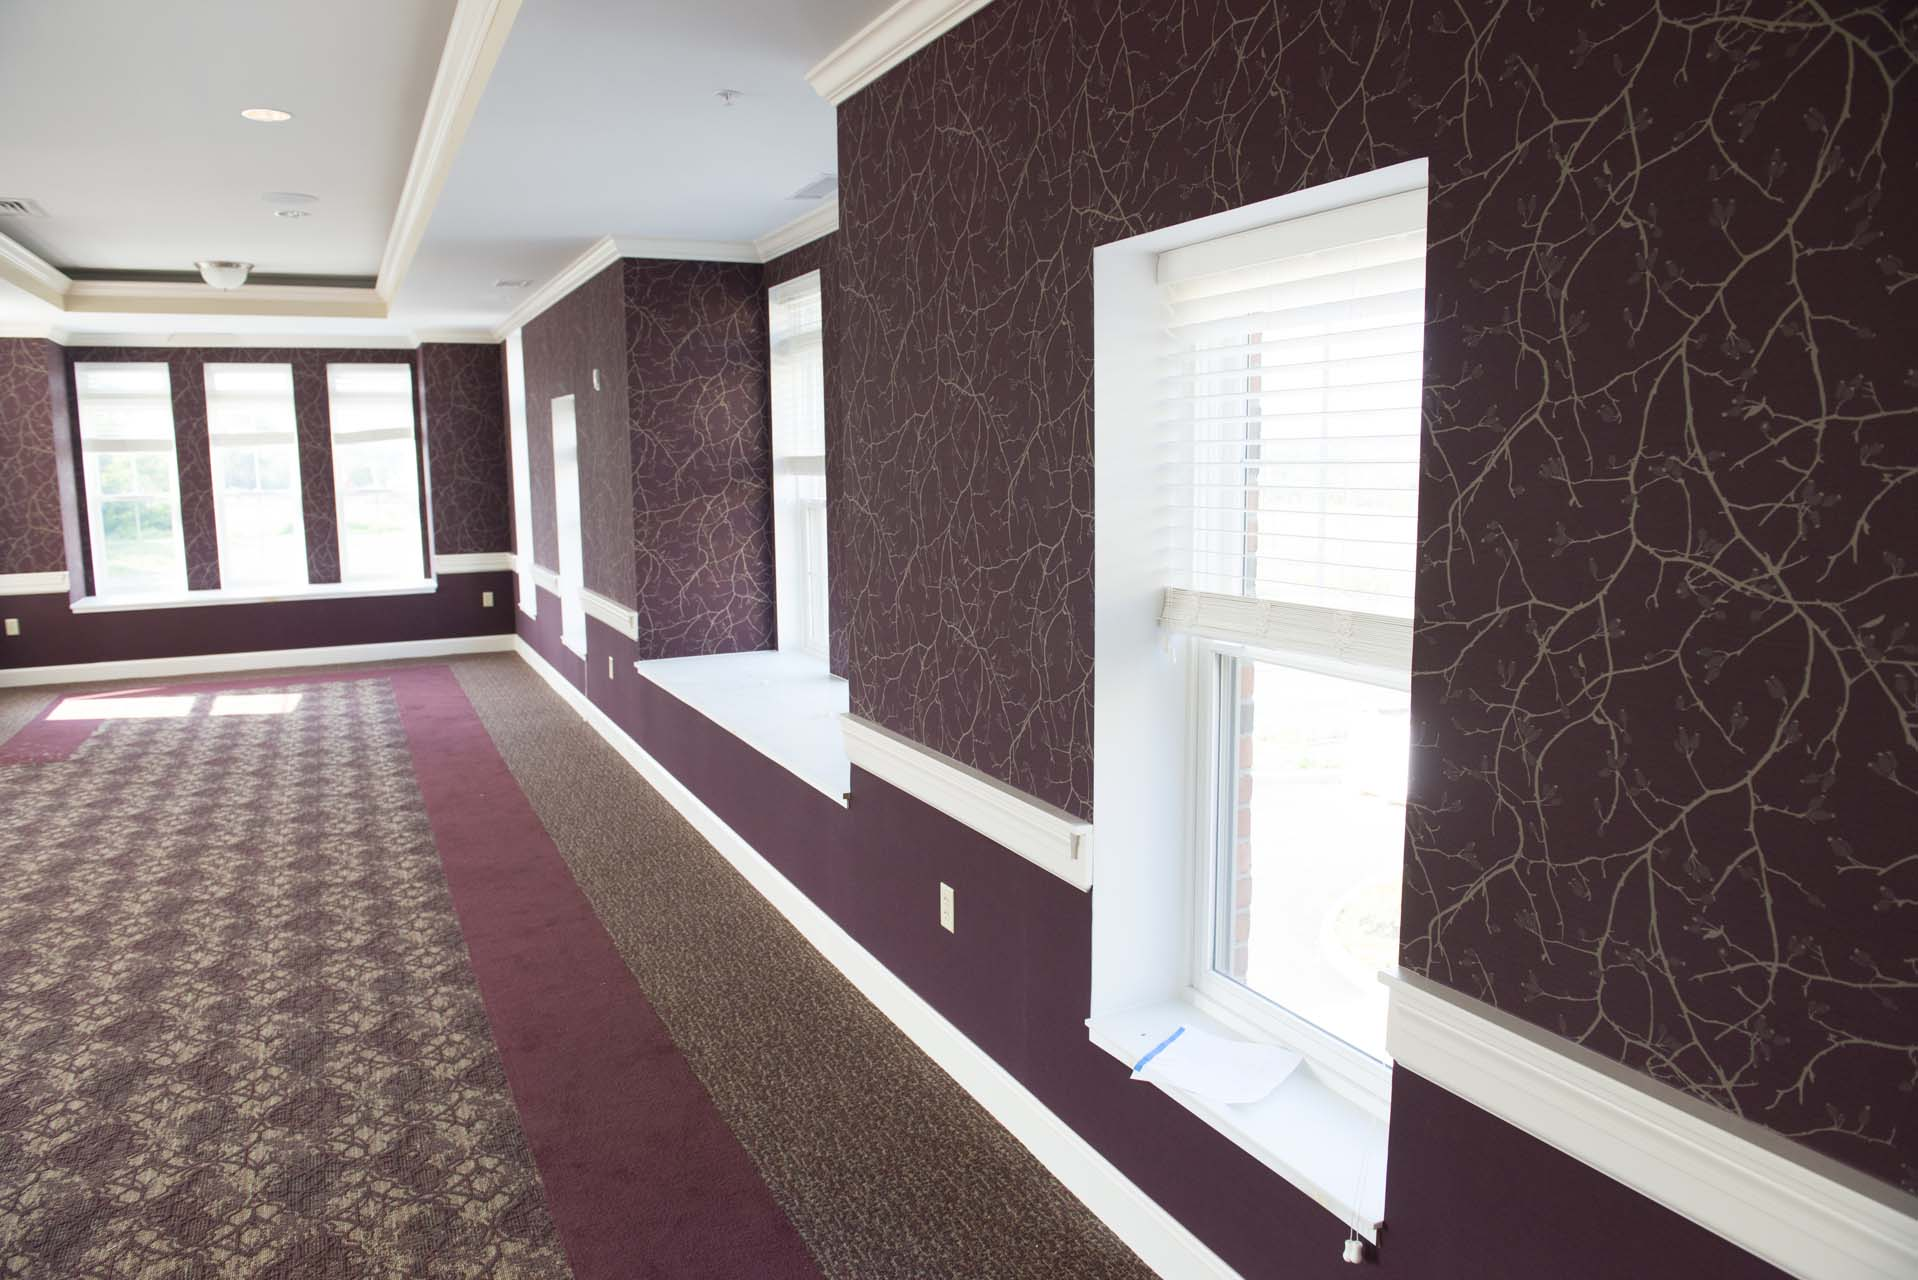 Commercial Painting and Wall Covering